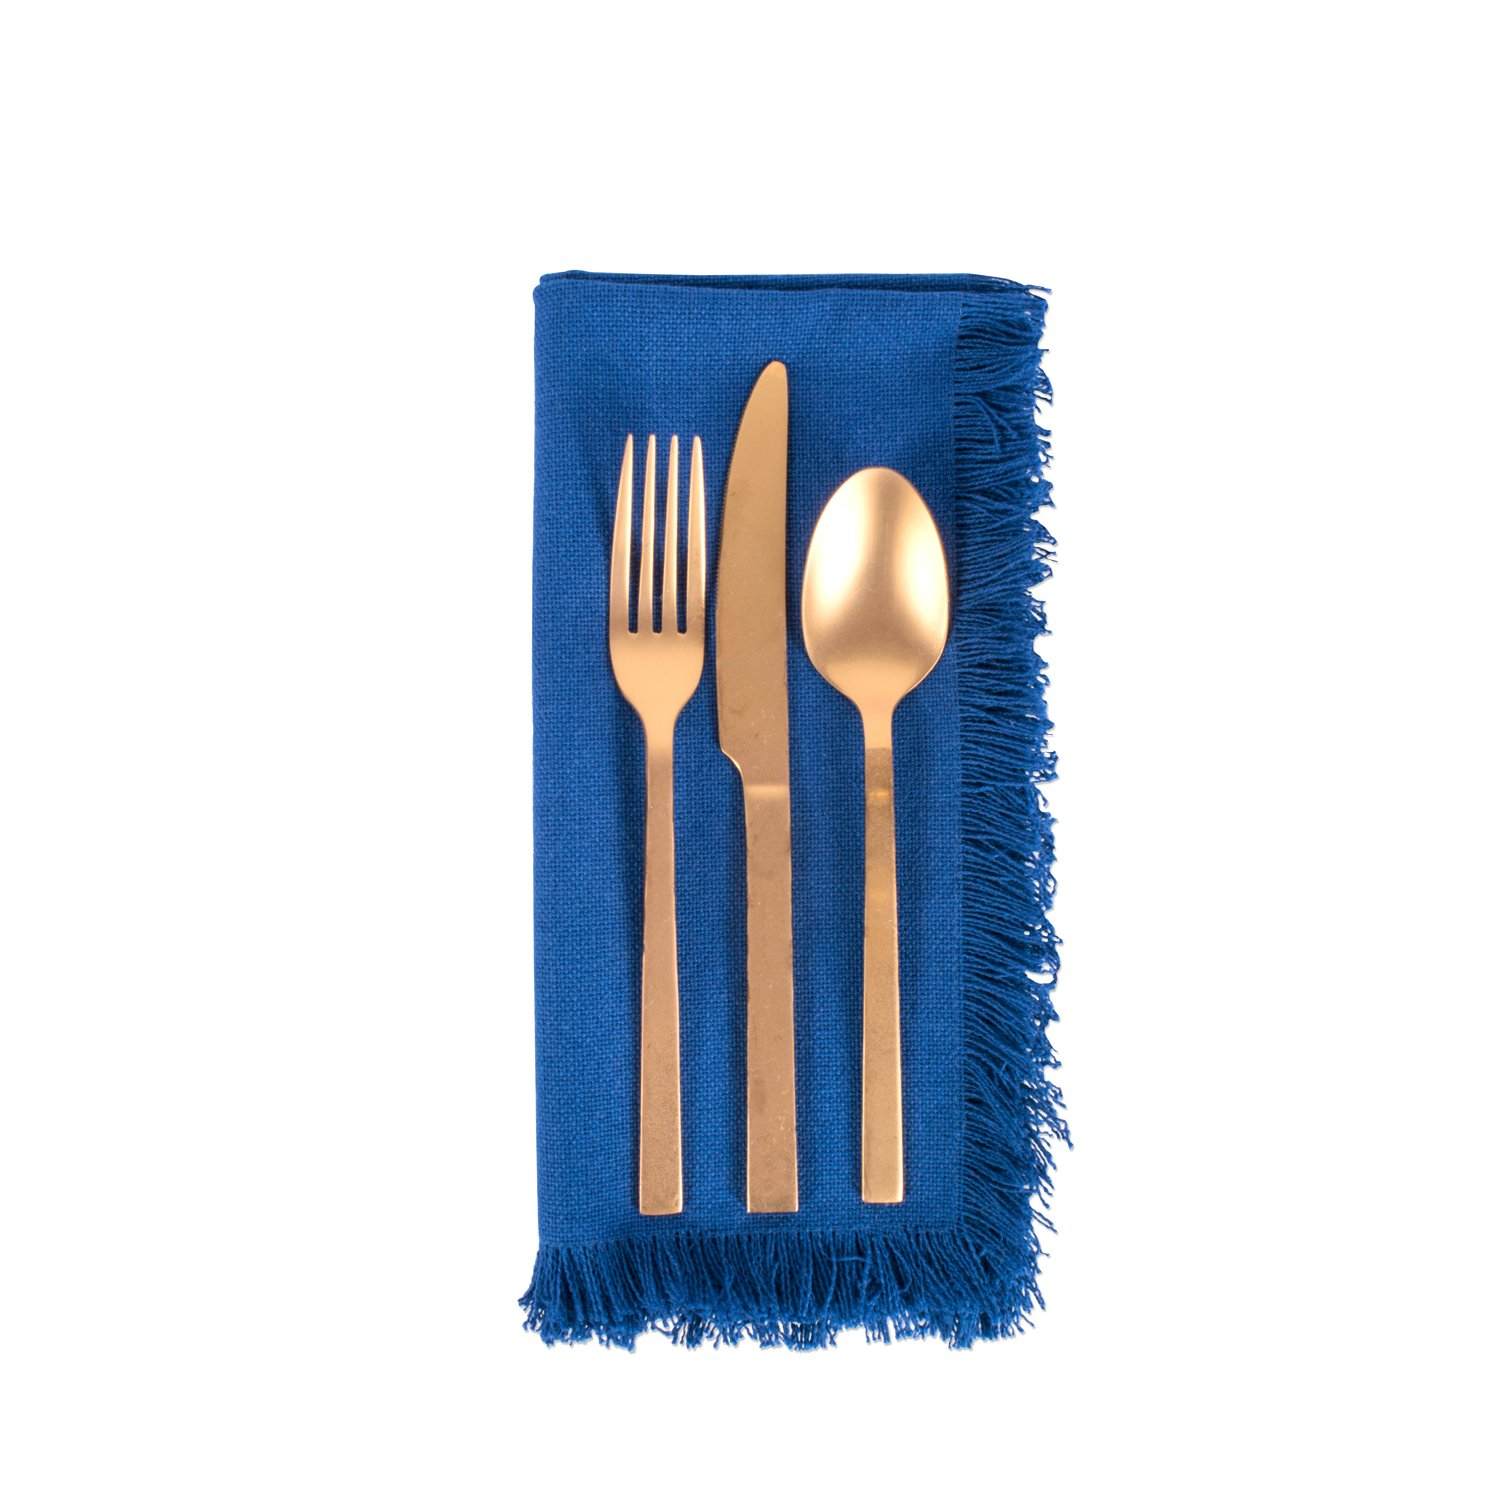 DII 100% Cotton, Oversized Basic Everyday Woven Heavyweight Napkin with Decorative Fringe for Place Settings, Family Dinners, BBQ, and Holidays (20x20'', Set of 6) Navy Blue Solid by DII (Image #7)